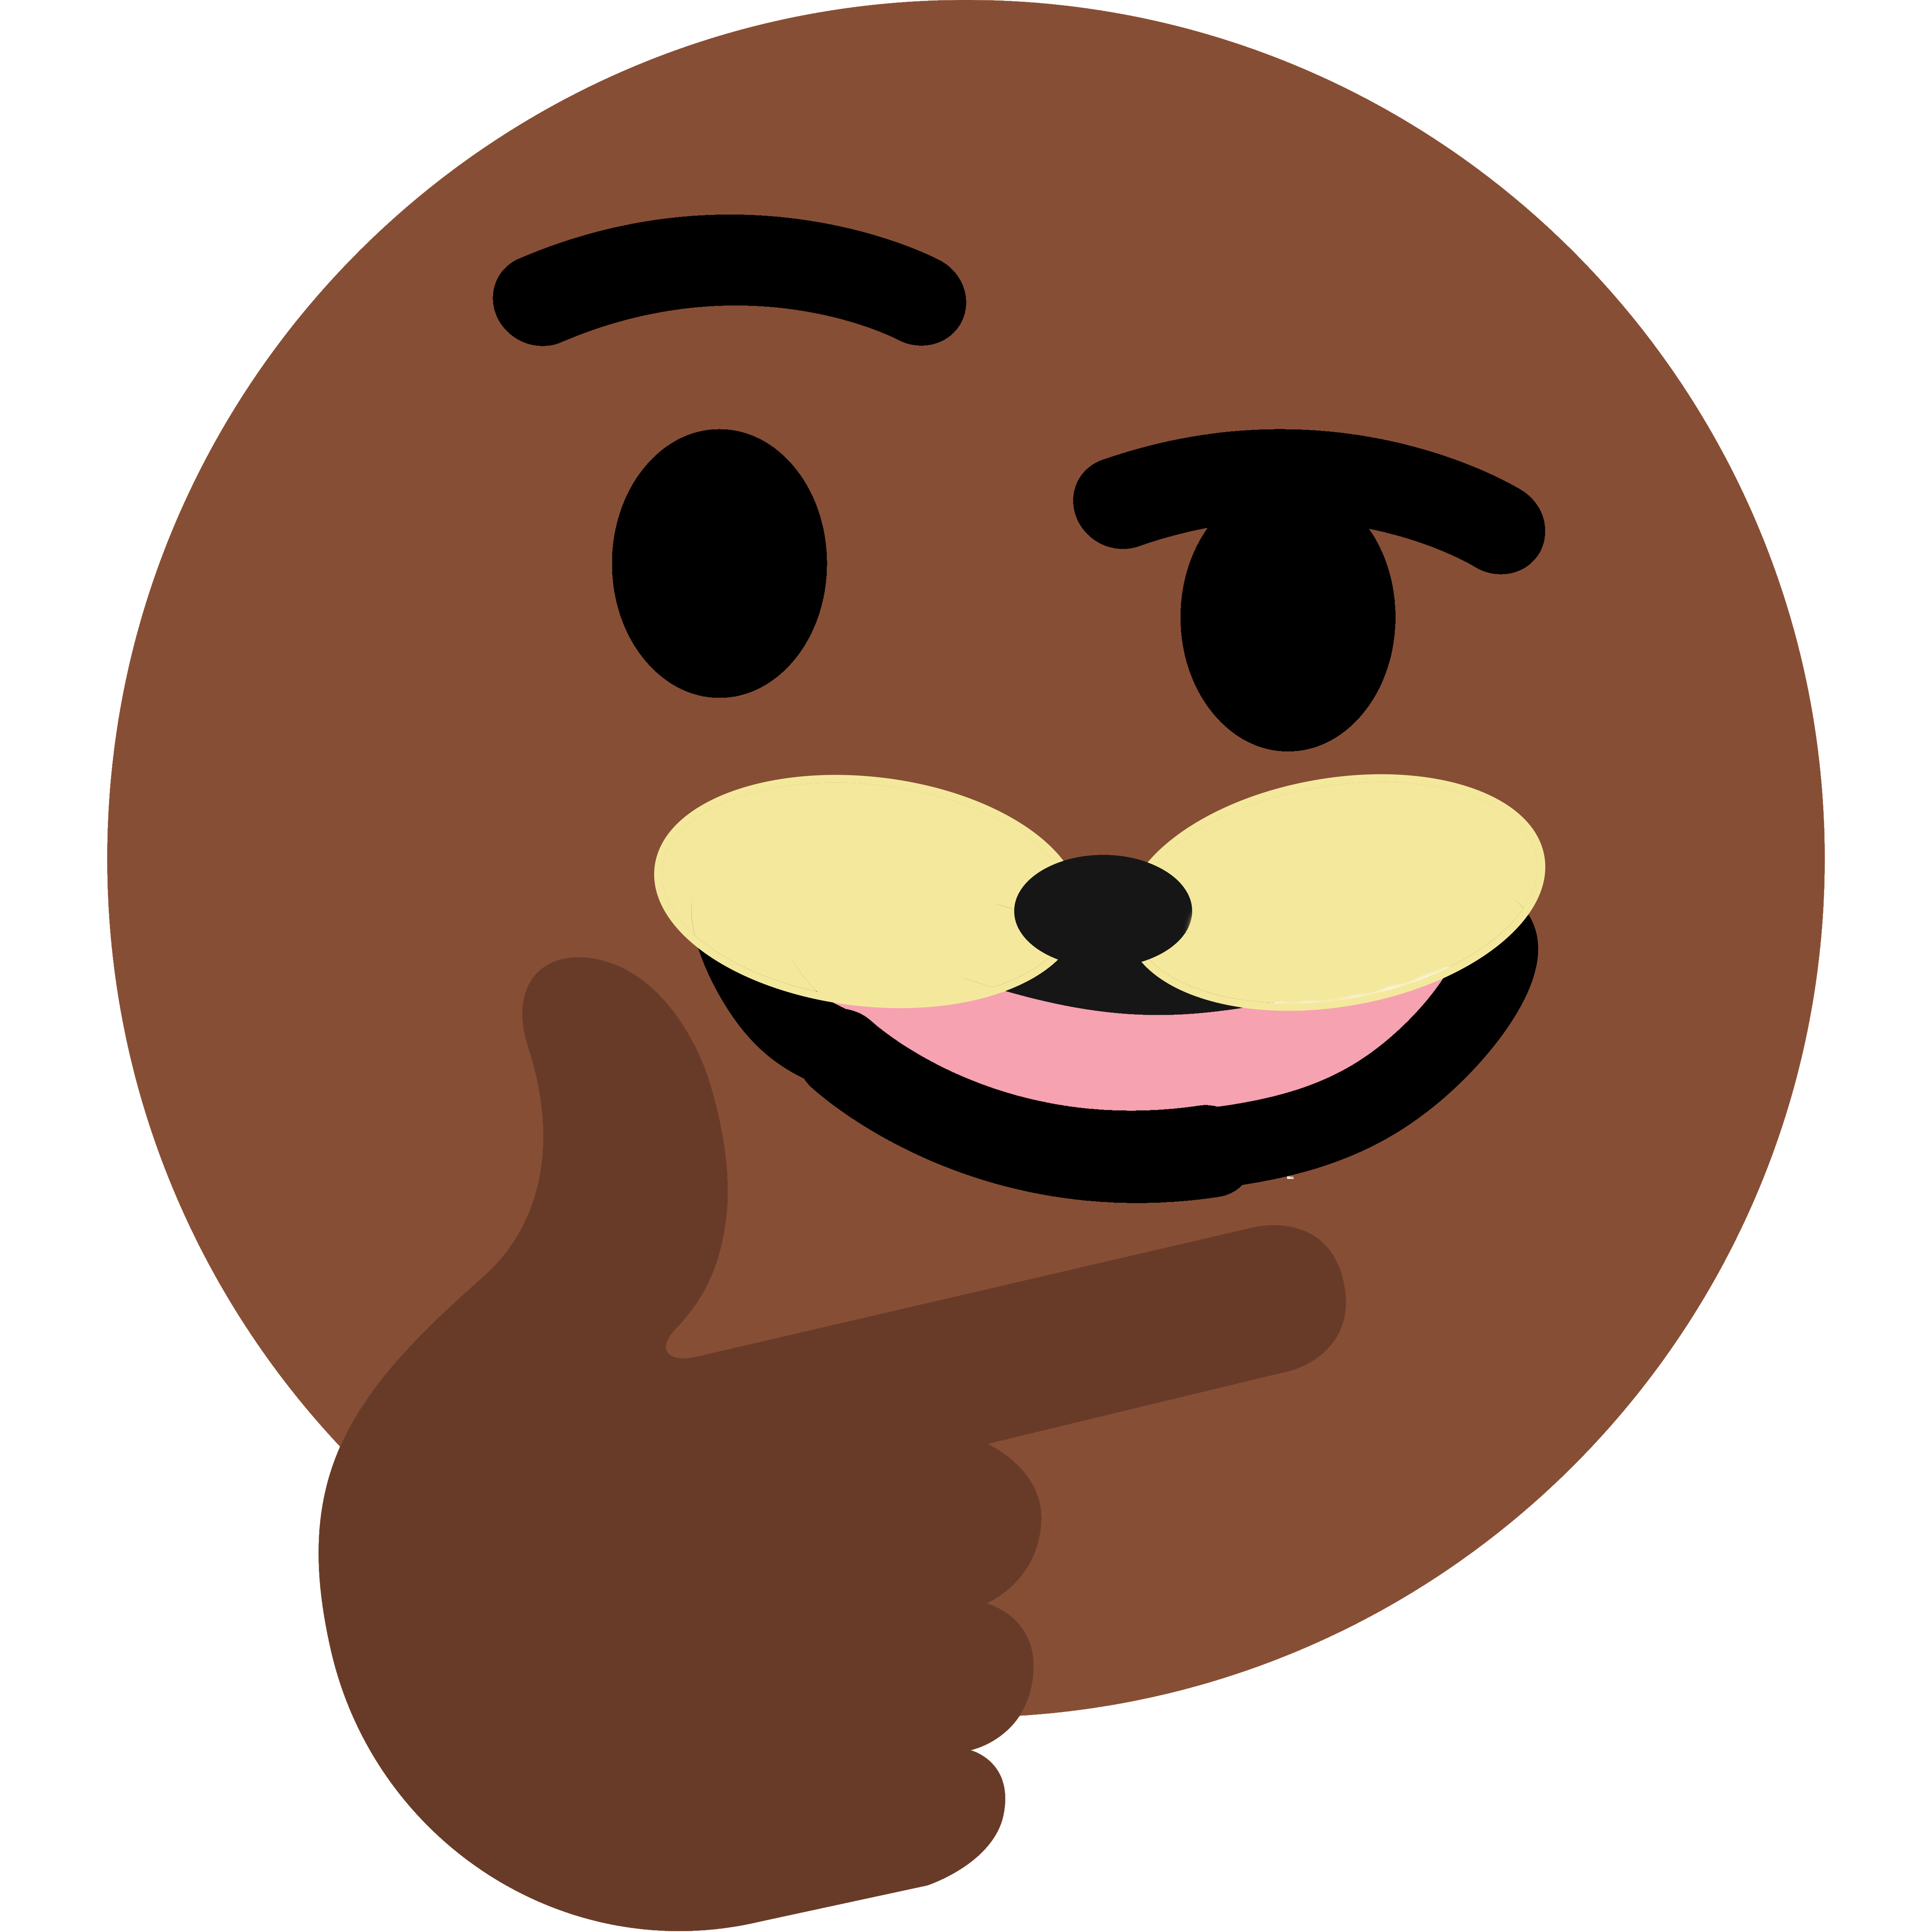 Thinking spurdo face snout. Emoji clipart king